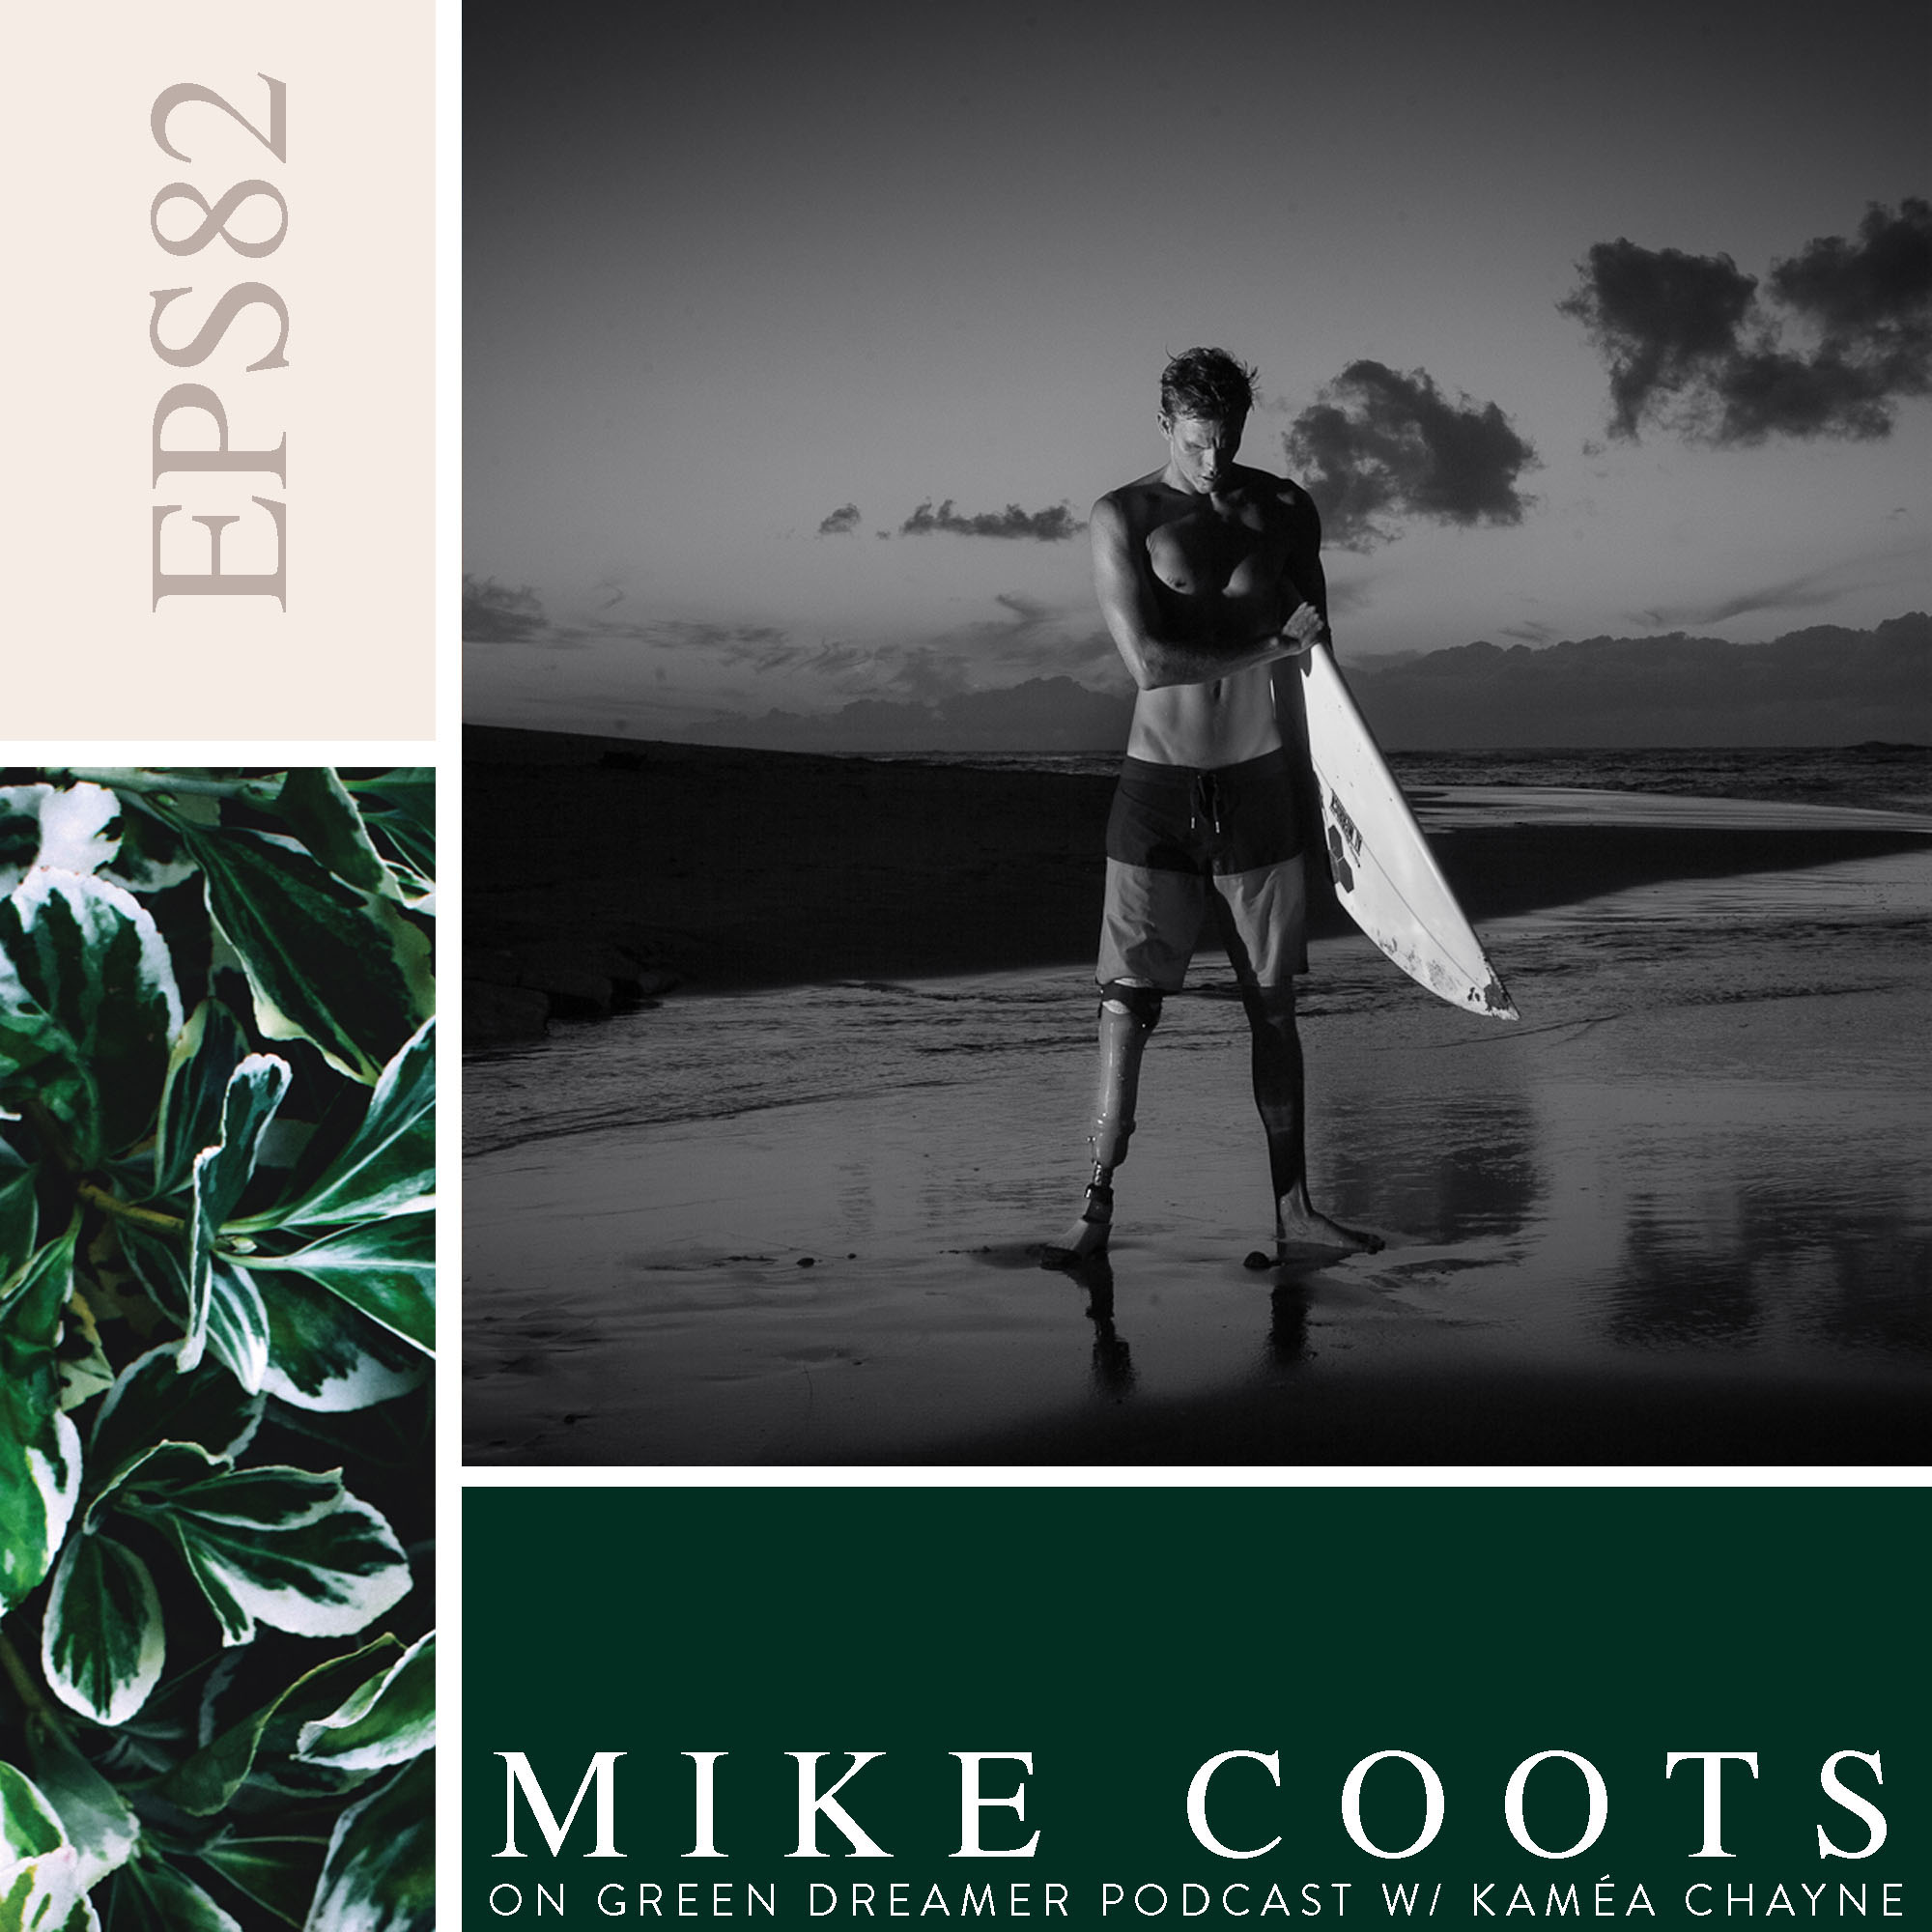 82-Mike-Coots-shark-attack-survivor-shark-conservationist-talks-sustainability-on-Green-Dreamer-Podcast-with-Kamea-Chayne.jpg